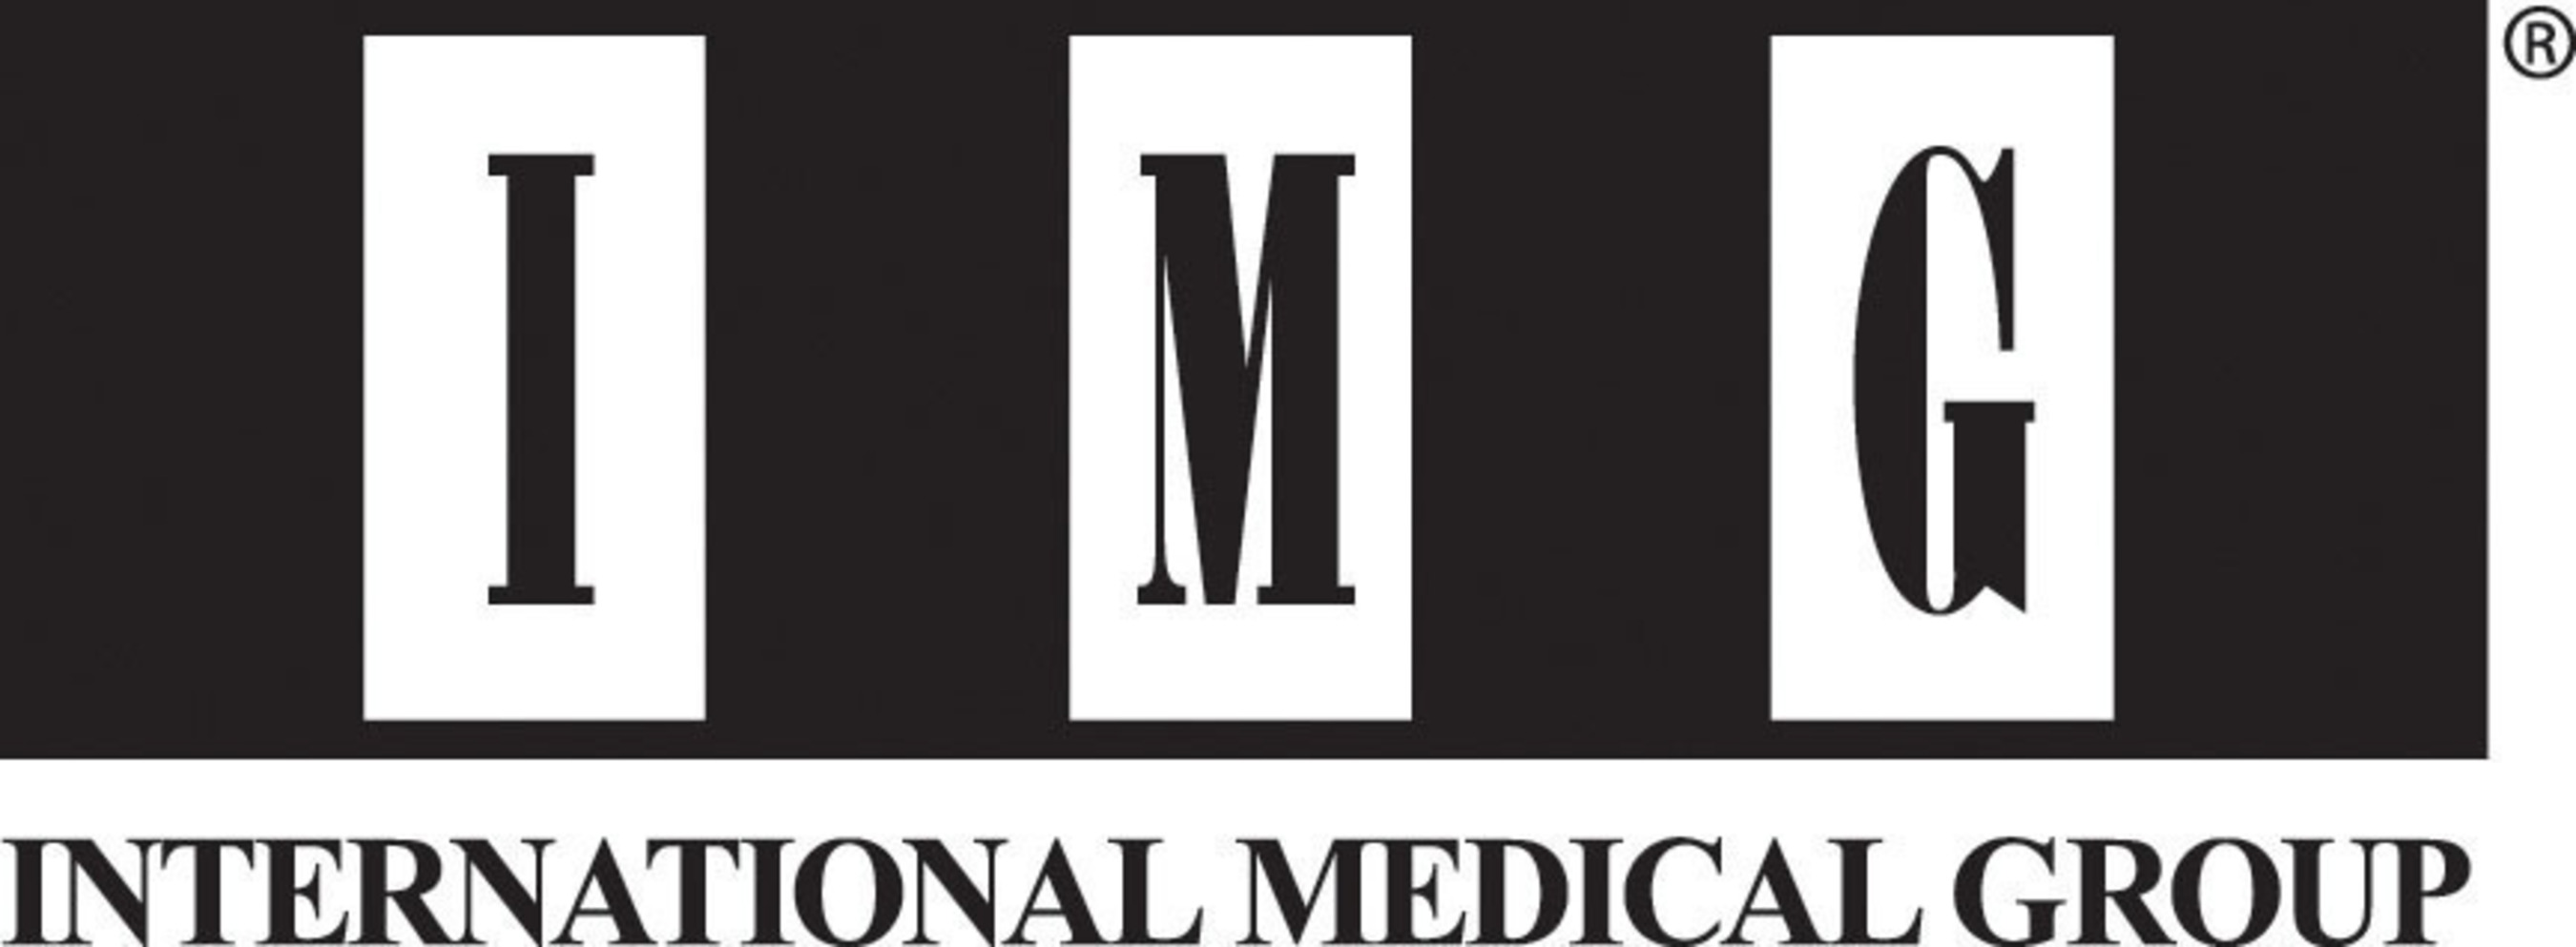 International Medical Group (IMG) has appointed Todd A. Hancock president and chief executive officer, effective immediately. Brian Barwick, IMG's former CEO, will continue to serve as executive chairman of the company.